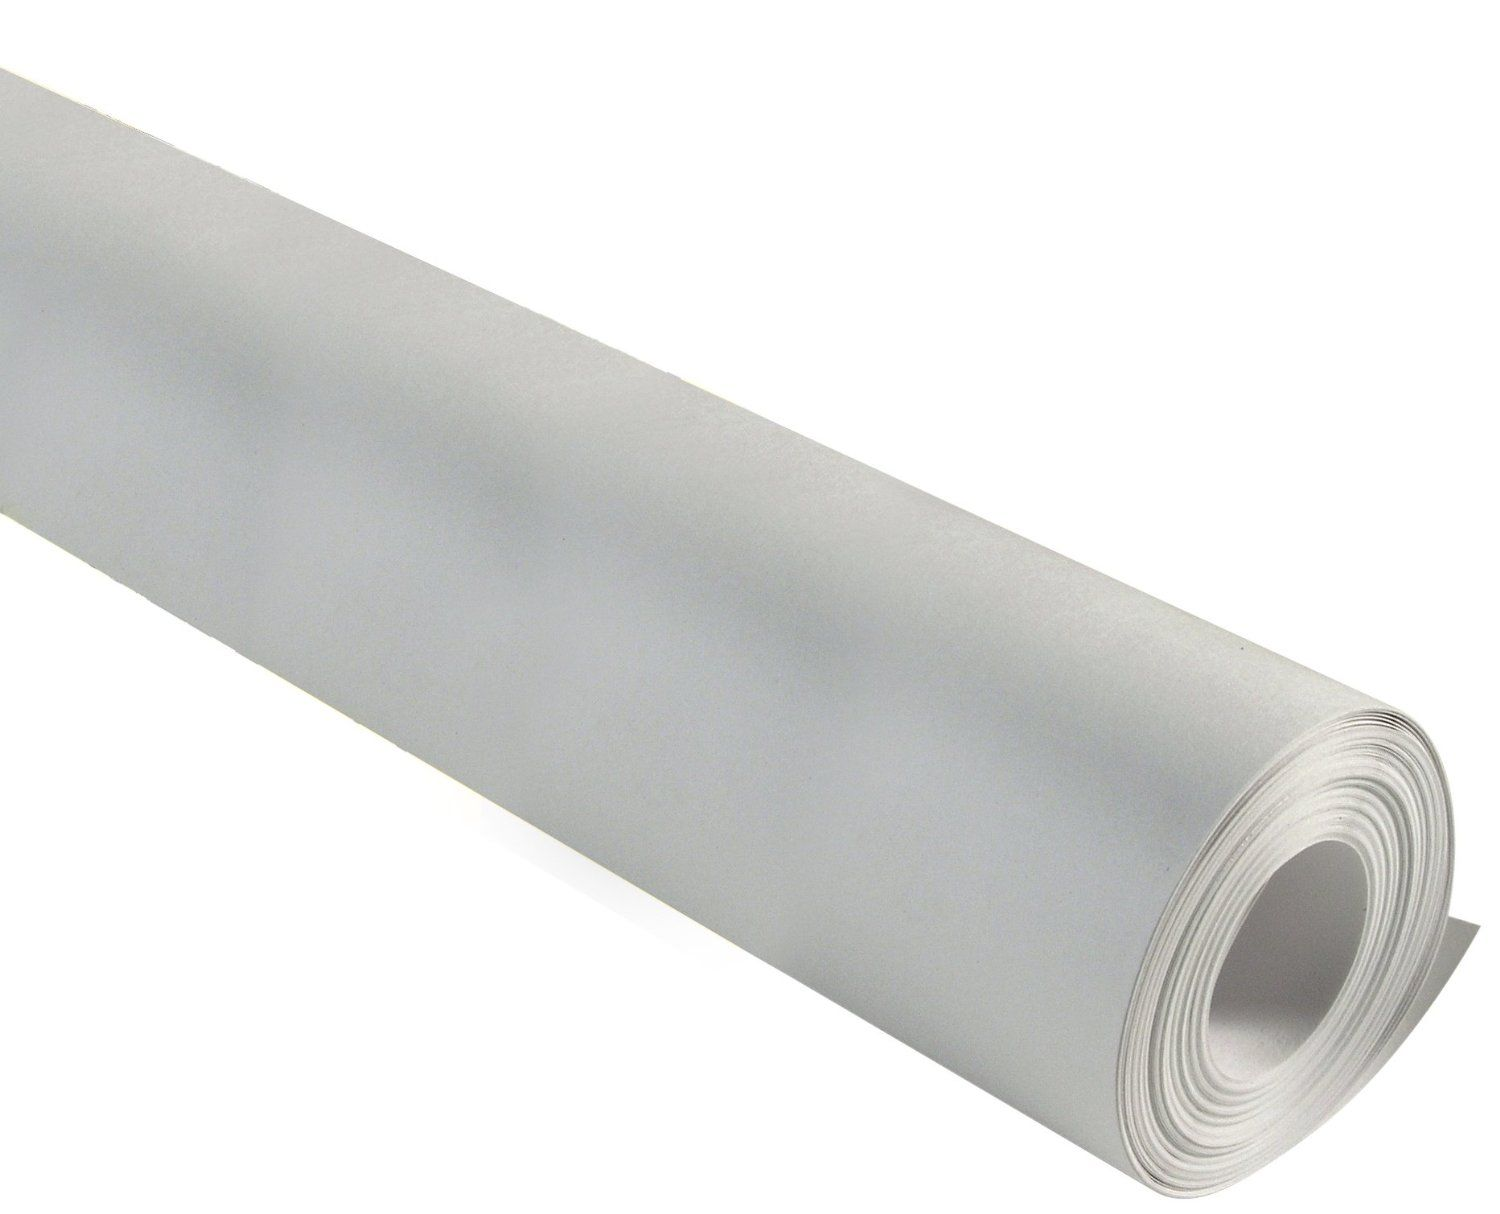 12-Inch by 50-Yards Bee Paper White Sketch and Trace Roll